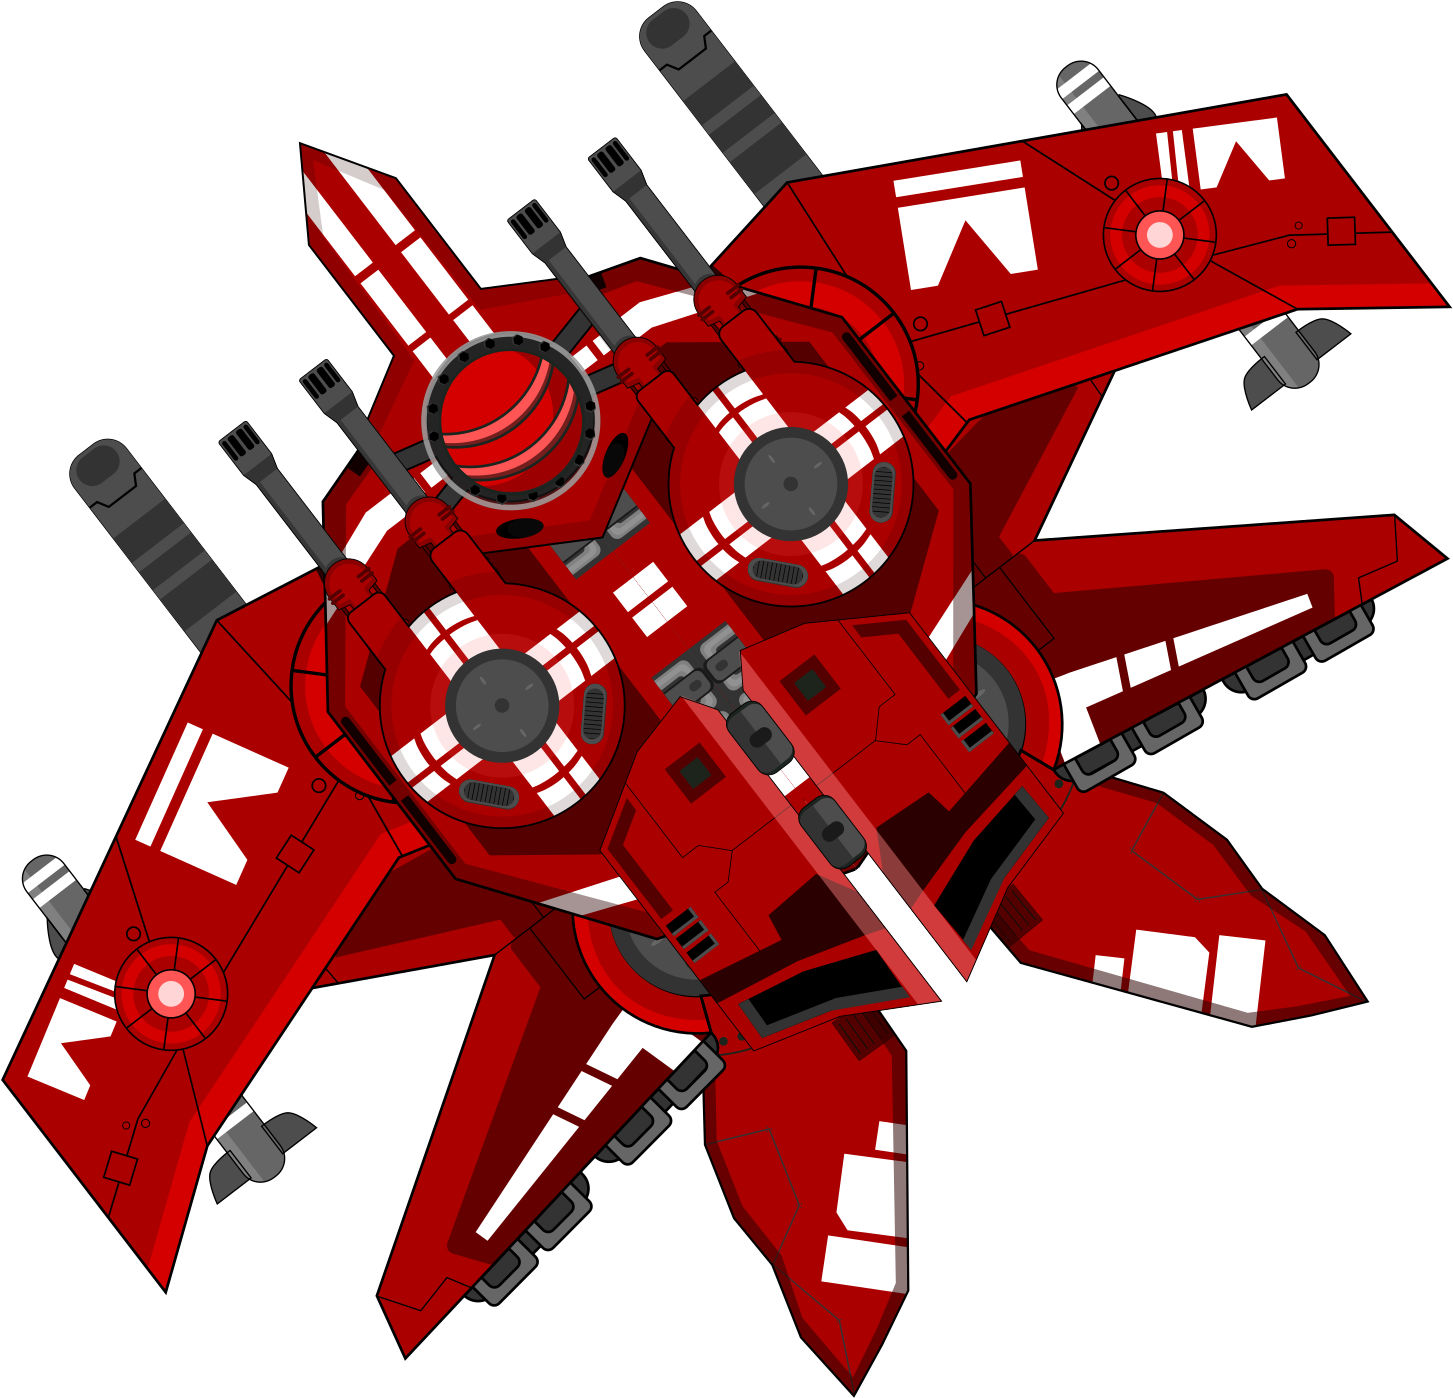 Hd free unlimited . Spaceship clipart red